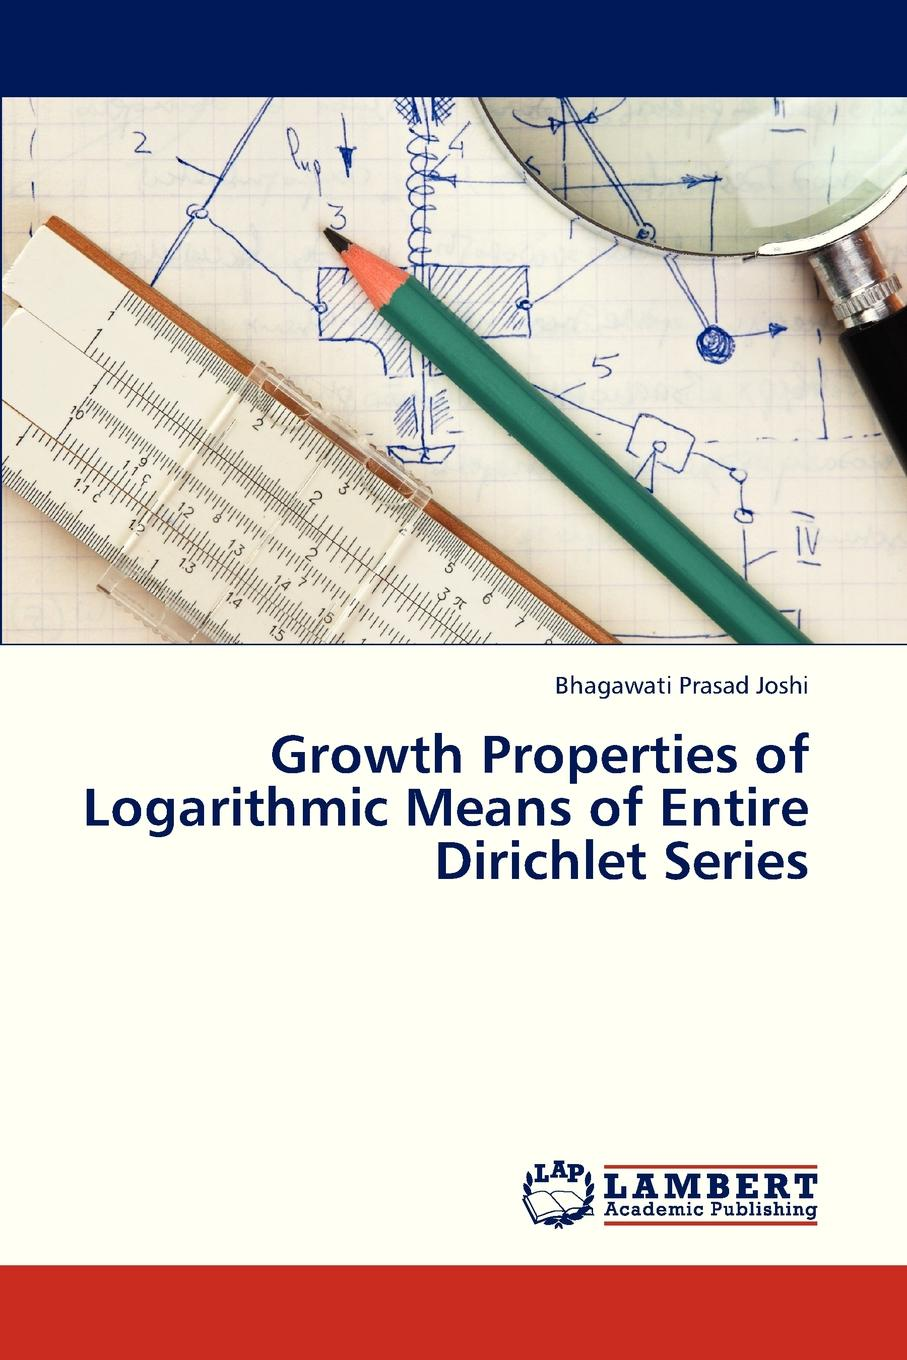 Joshi Bhagawati Prasad Growth Properties of Logarithmic Means of Entire Dirichlet Series